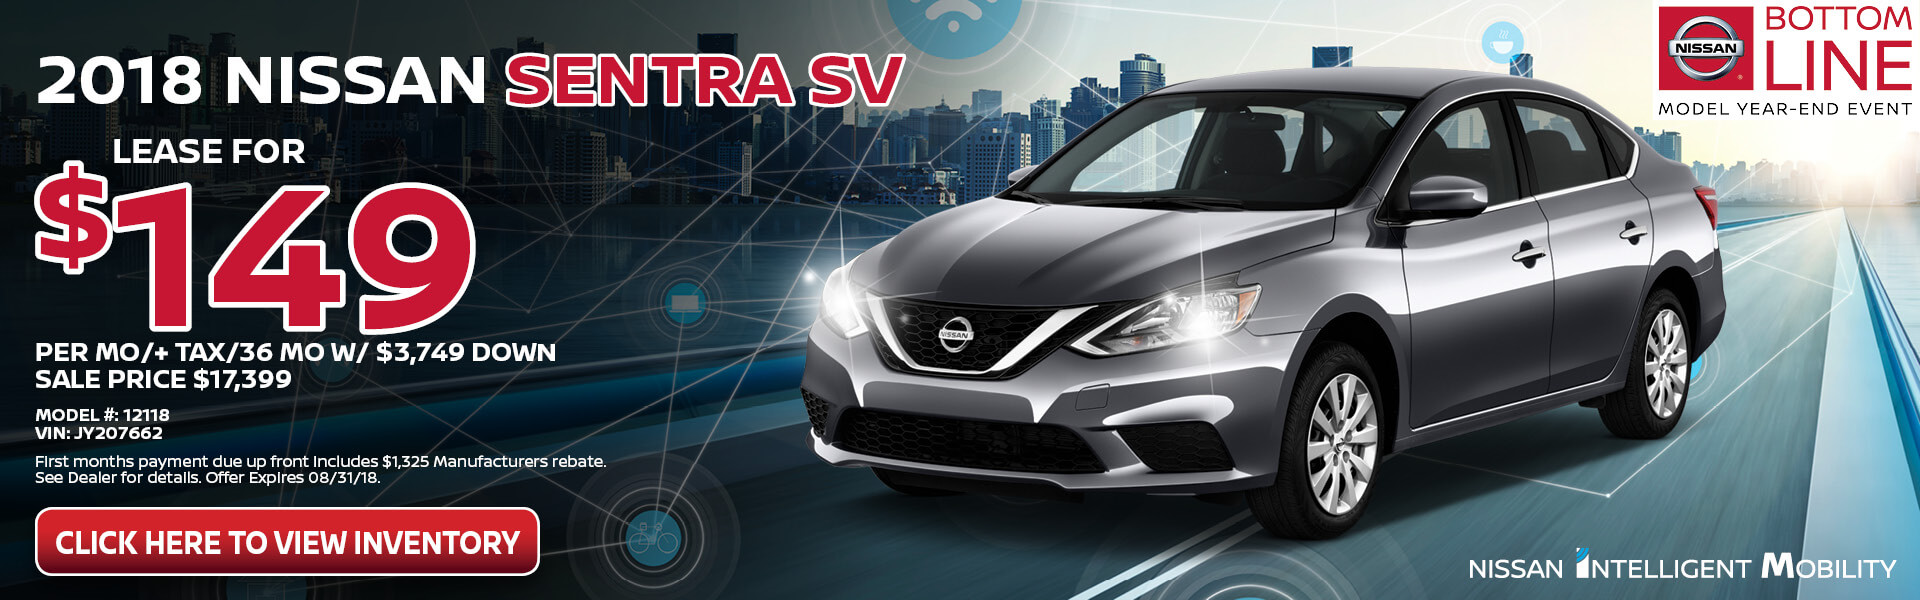 Nissan Sentra $149 Lease